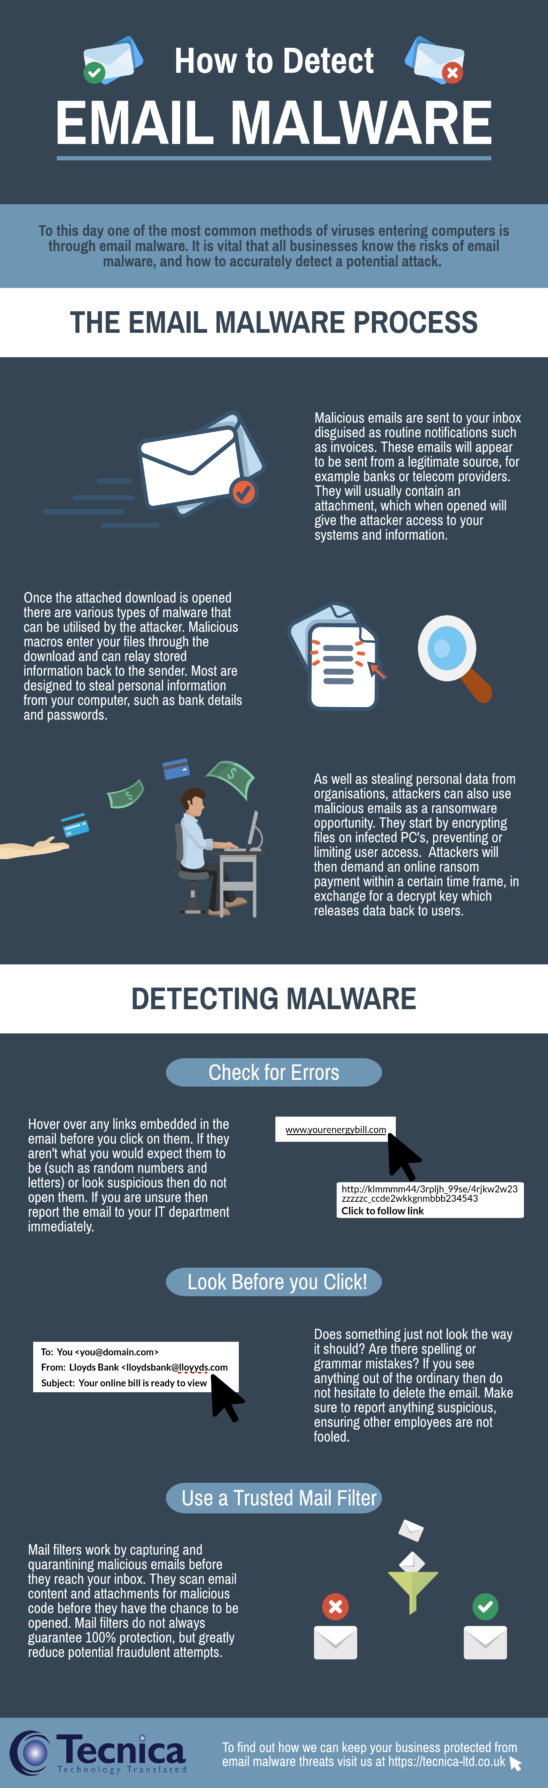 Email malware detection